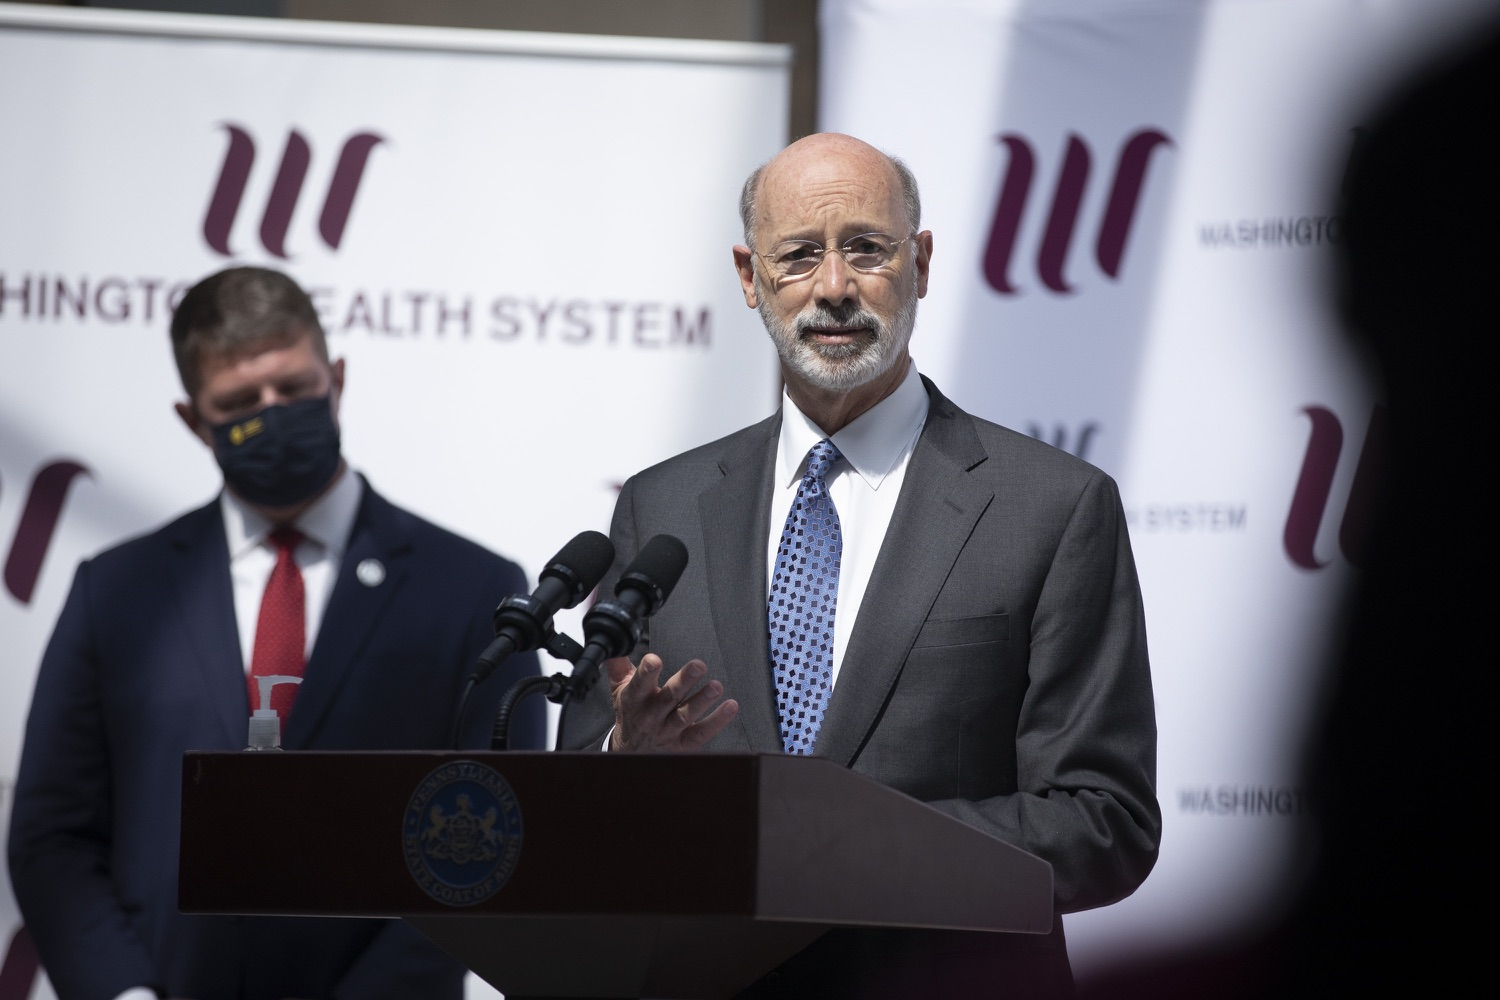 "<a href=""https://filesource.wostreaming.net/commonwealthofpa/photo/18712_gov_vaccines_dz_012.jpg"" target=""_blank"">⇣ Download Photo<br></a>Pennsylvania Governor Tom Wolf speaking with the press.  Continuing to visit COVID-19 vaccine clinics around the state, Governor Tom Wolf toured a clinic at the Washington Crown Center in Washington County today. The clinic is one of three operated by the Washington Health System (WHS) serving rural communities in southwestern Pennsylvania.  North Franklin Township, PA  April 28, 2021"